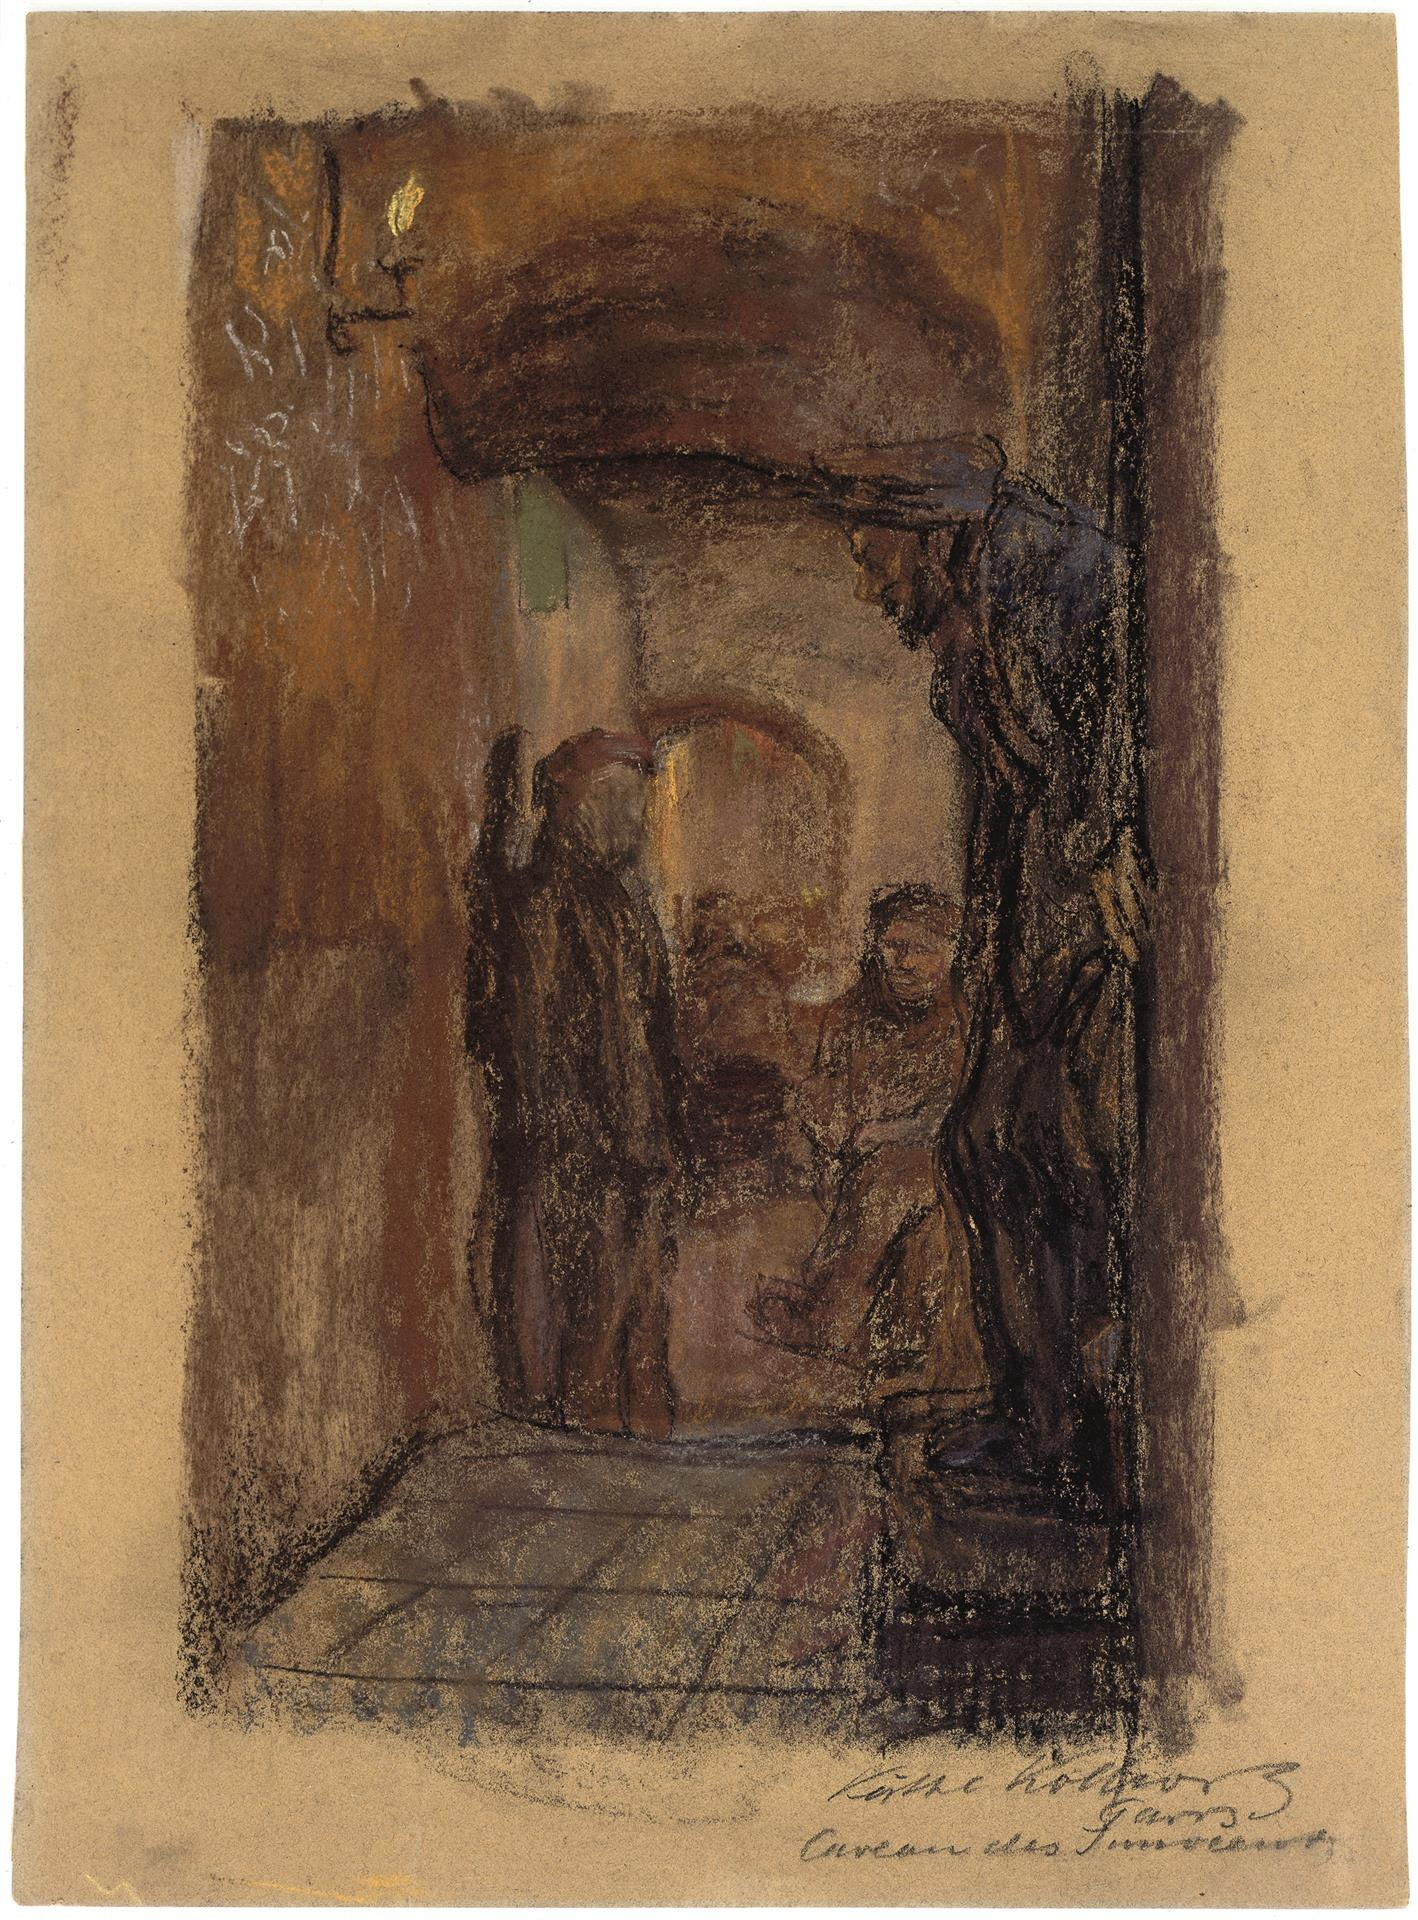 Käthe Kollwitz, Caveau des Innocents, 1904, coloured chalk on brownish drawing cardboard, NT 275, Cologne Kollwitz Collection © Käthe Kollwitz Museum Köln